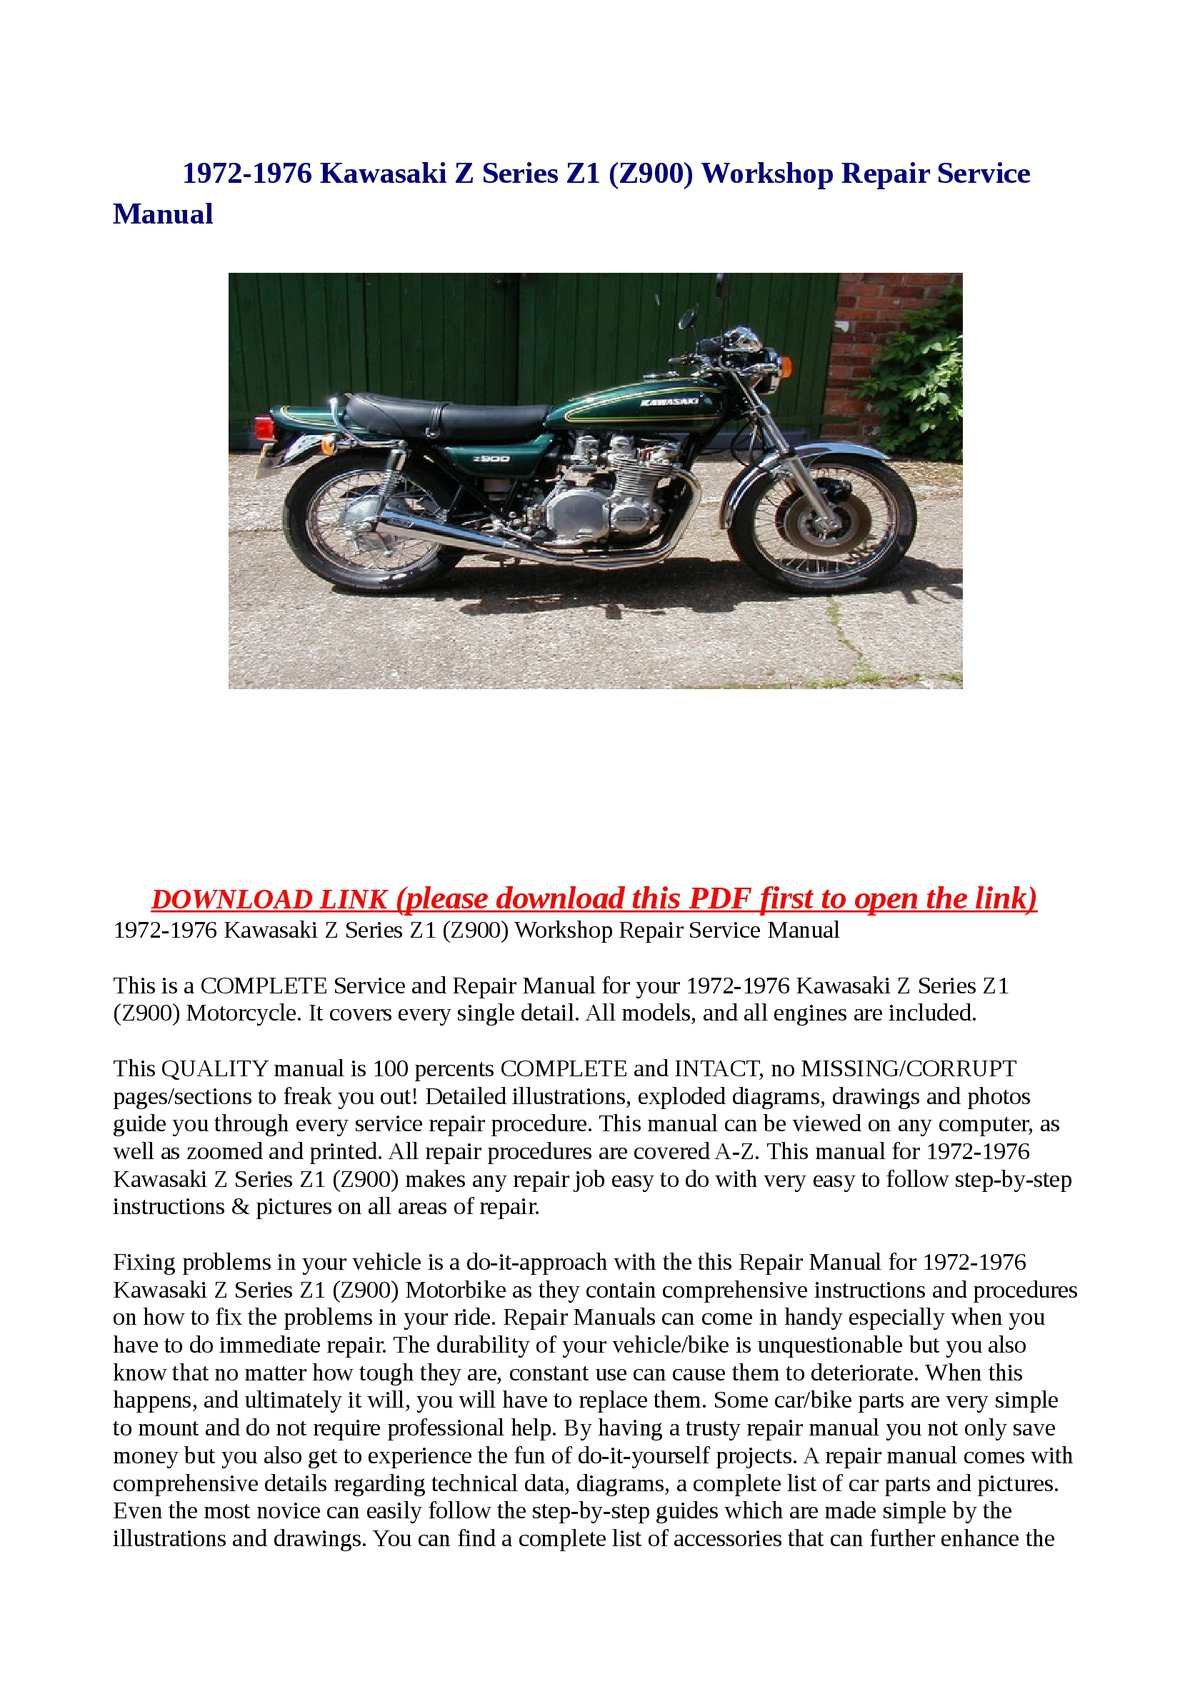 Calaméo - 1972-1976 Kawasaki Z Series Z1 (Z900) Workshop Repair Service  Manual